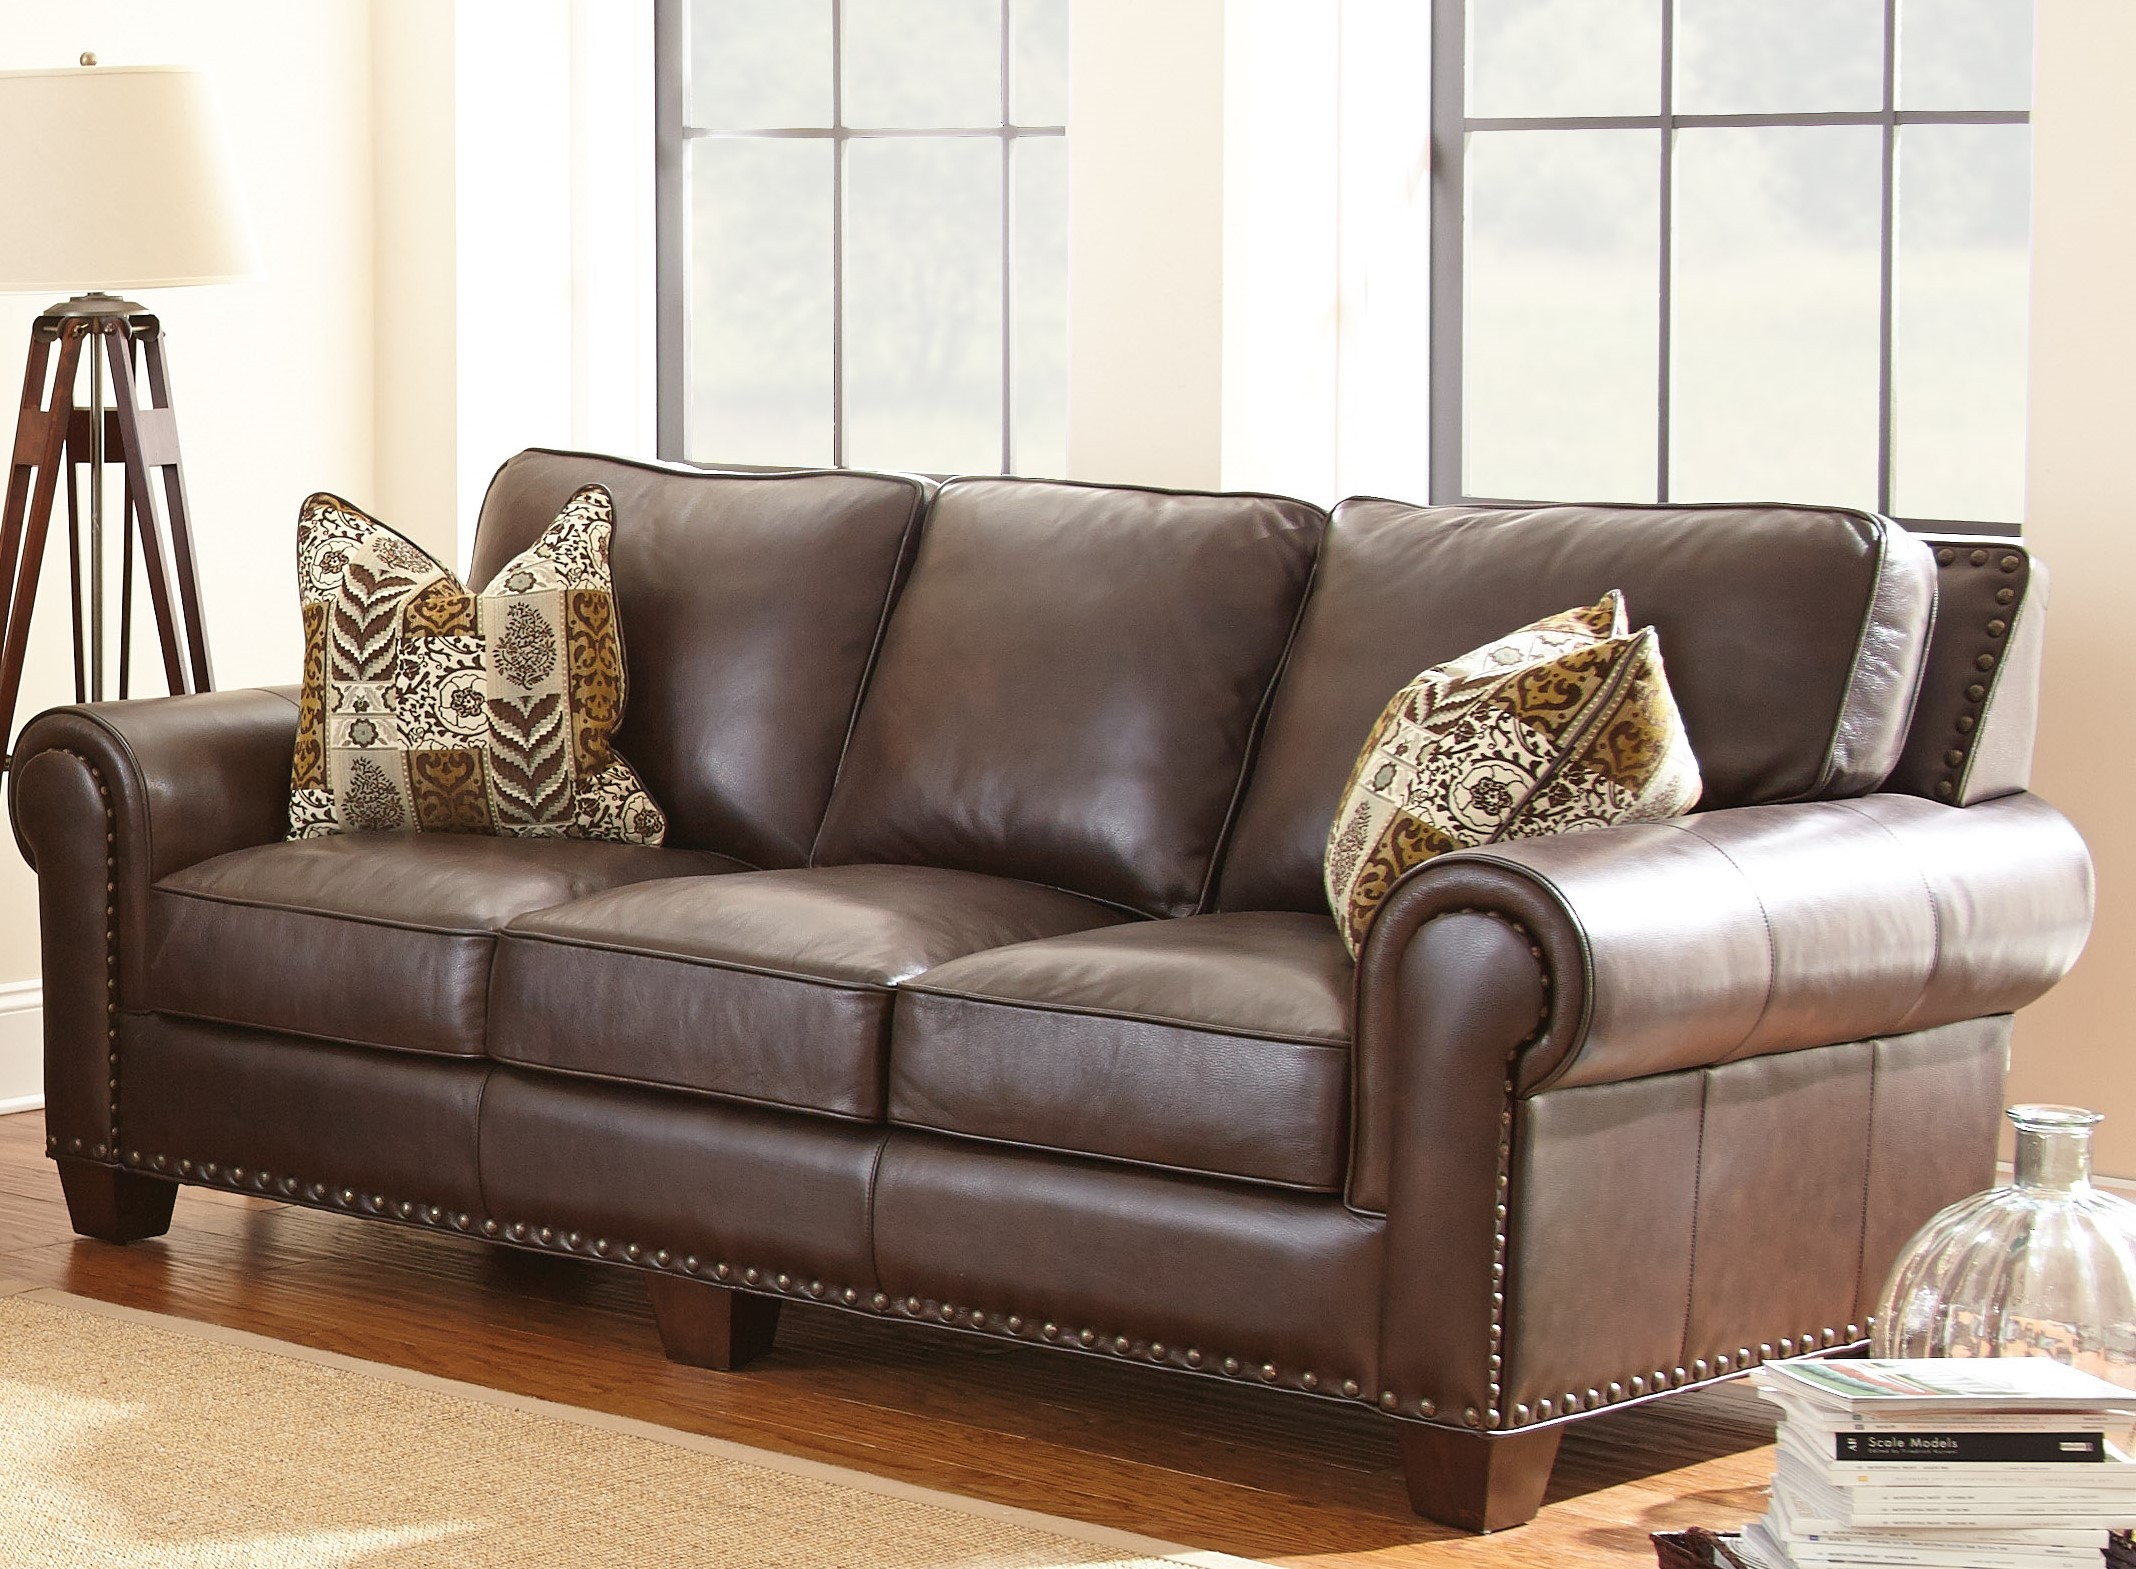 Escher Top Grain Leather Sofa with 2 Accent Pillows from Steve Silver (SR810S) Coleman Furniture